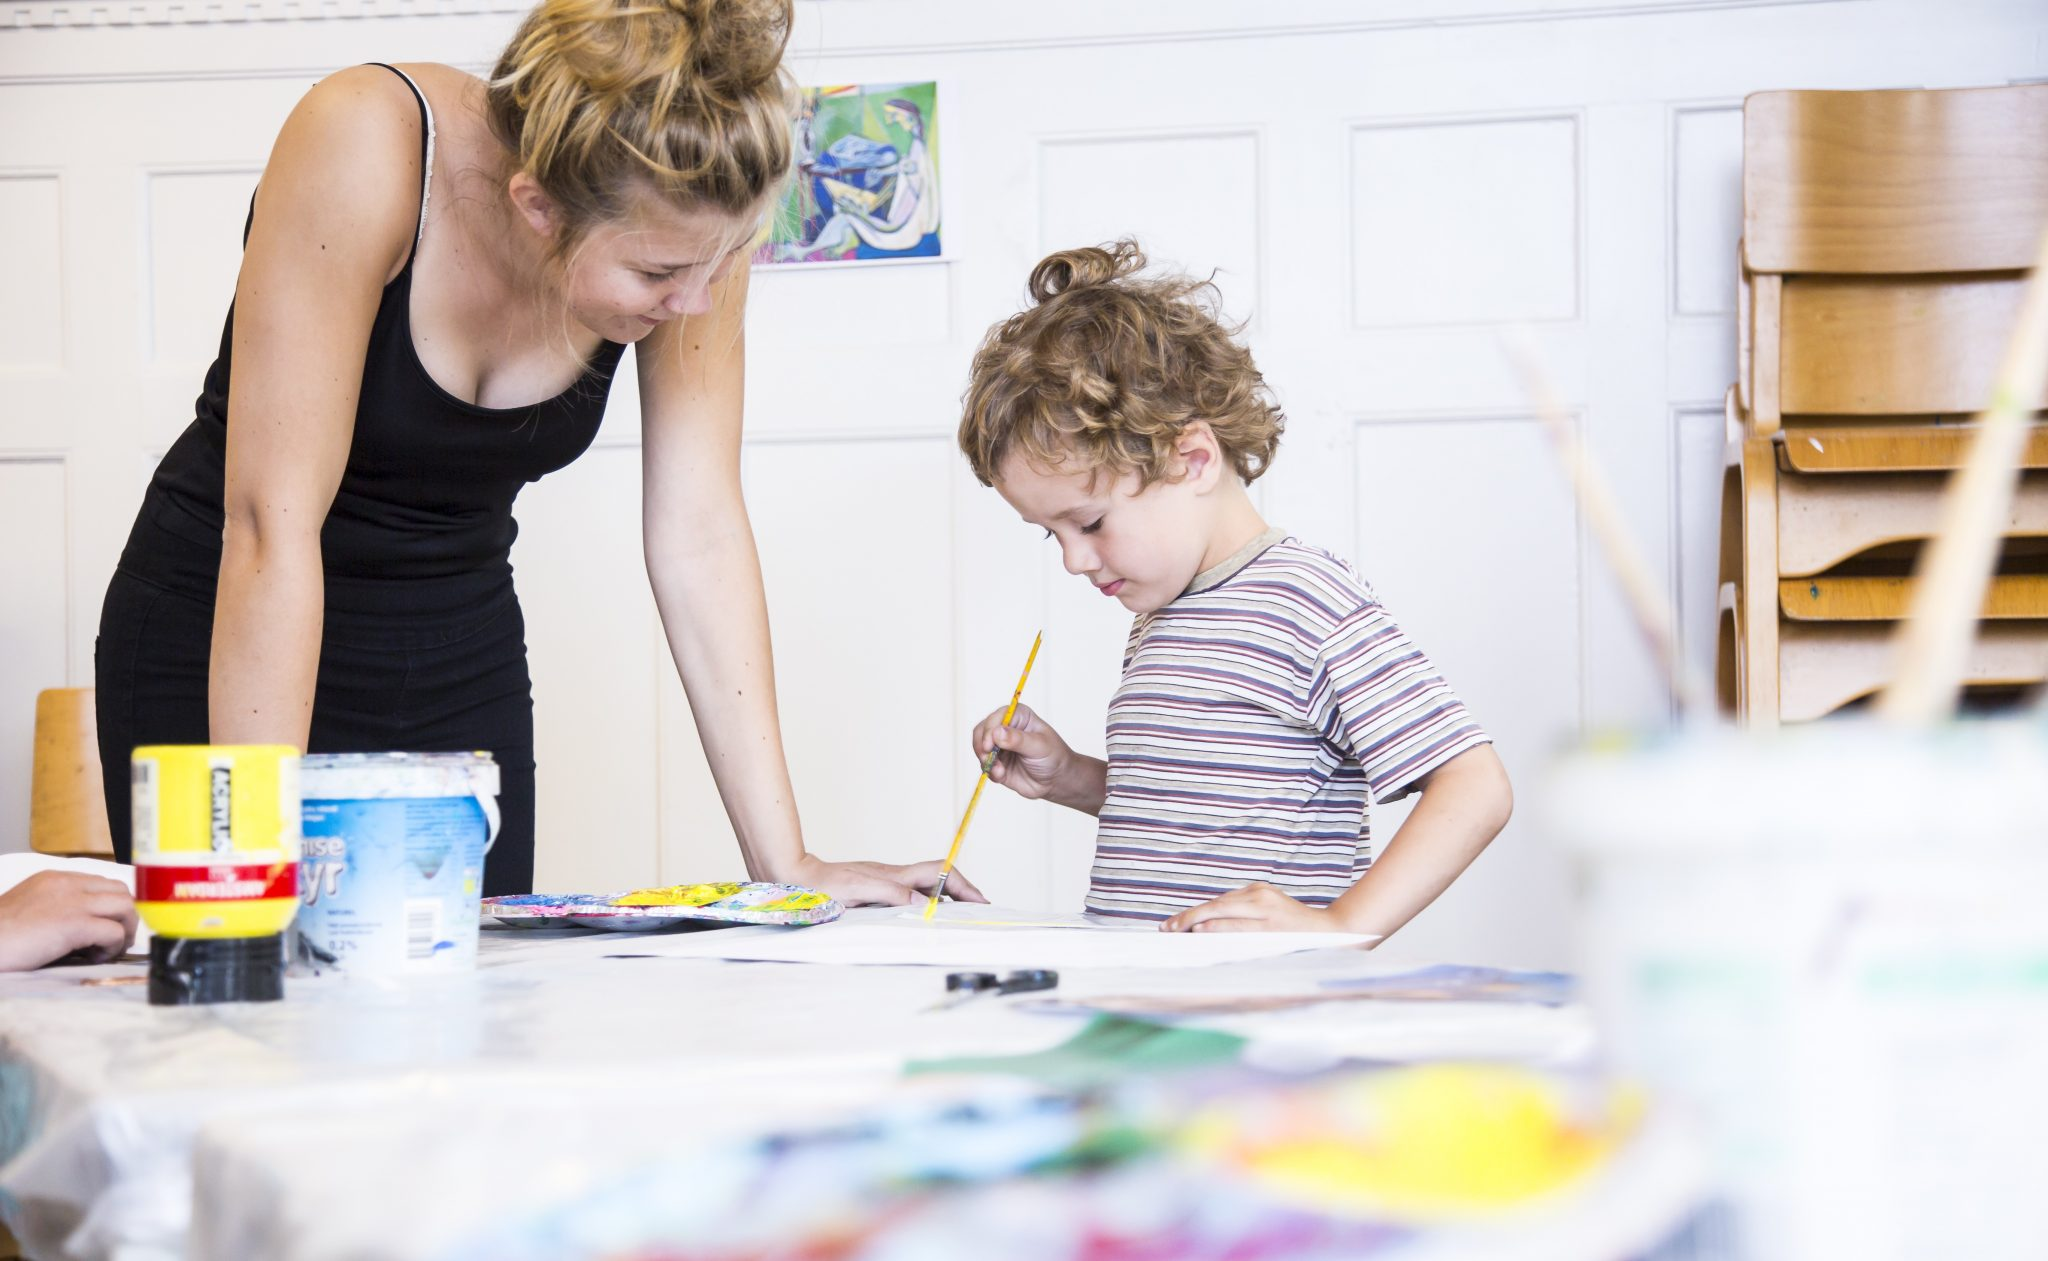 Boy painting at the School of Art